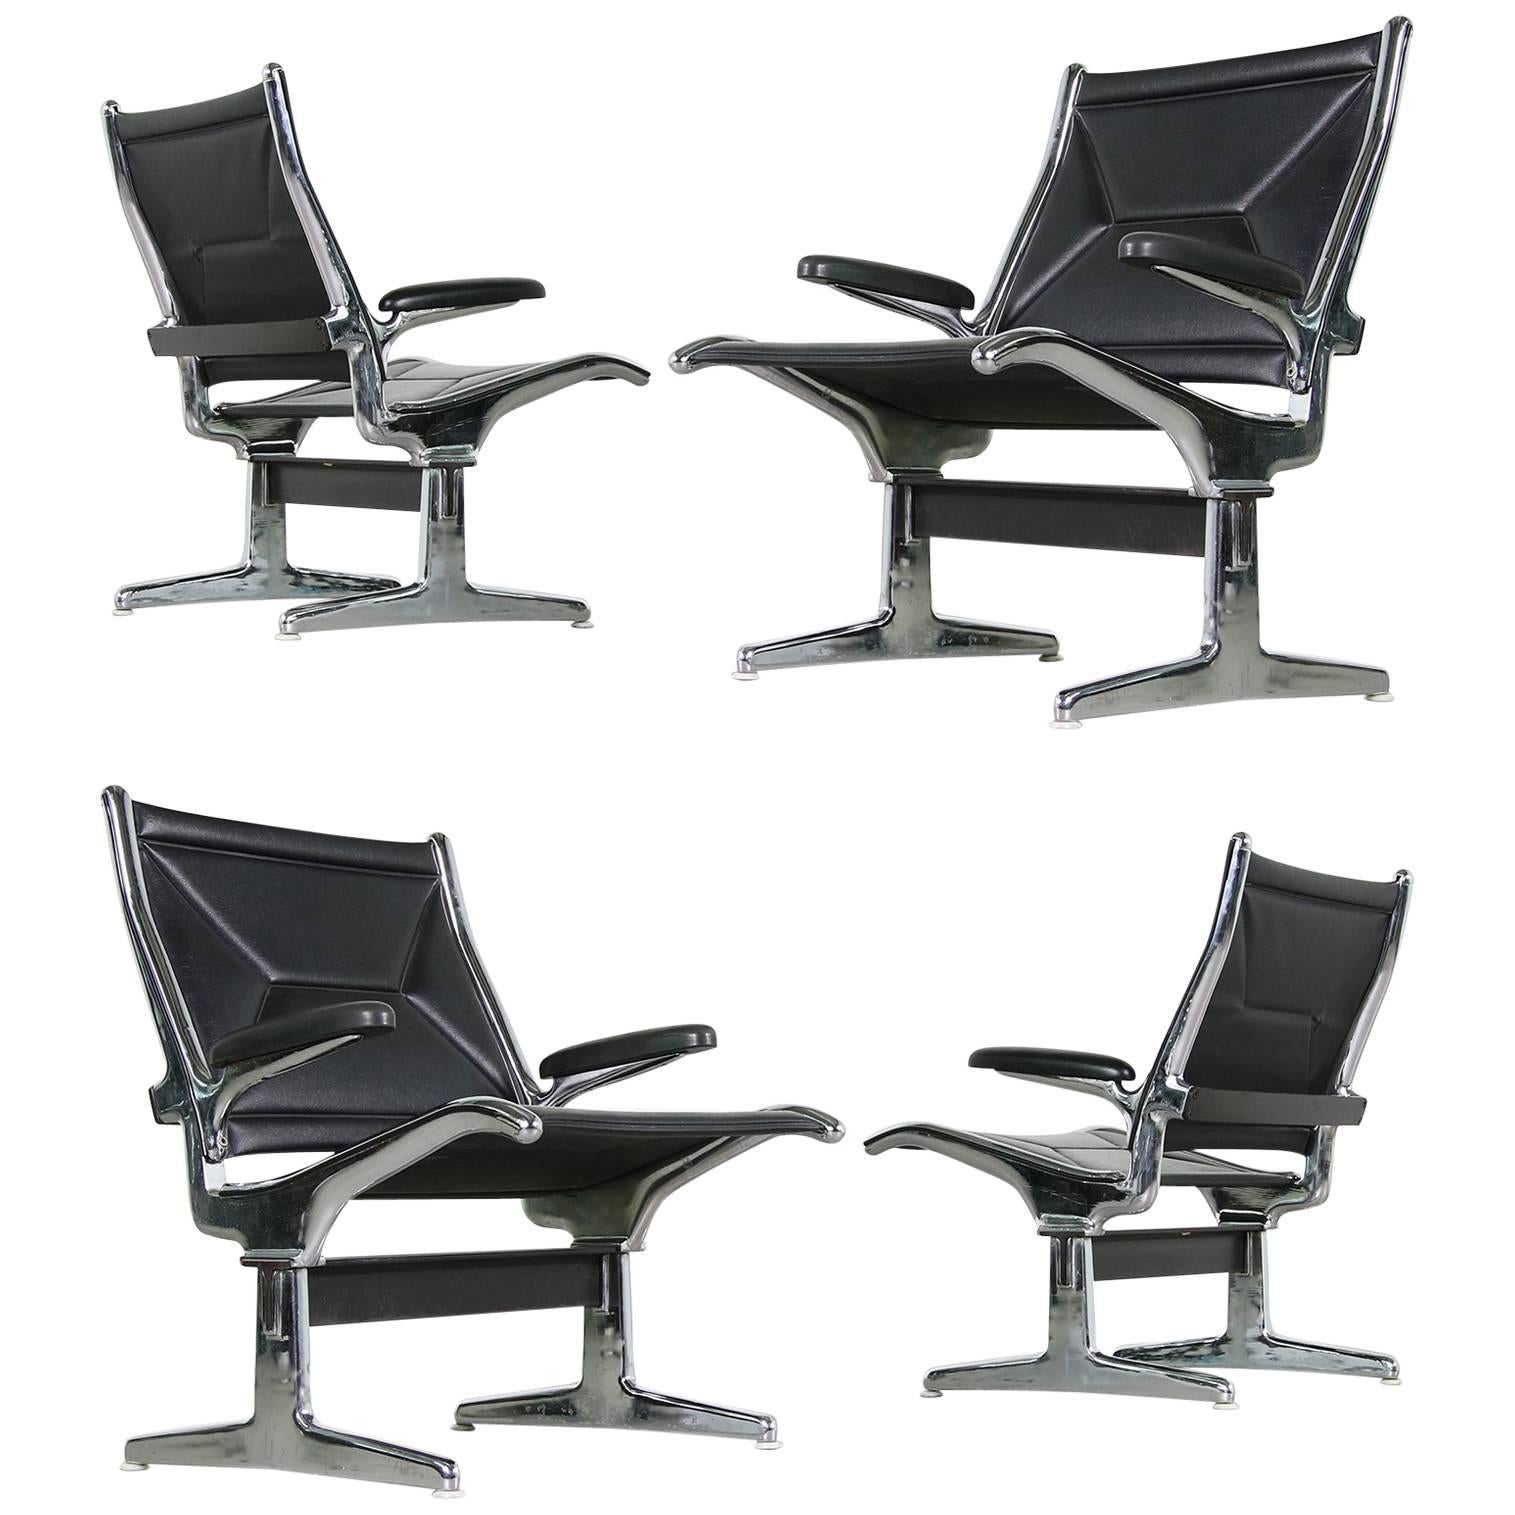 Set of Four 1960s Charles Eames Airport Chairs for Herman Miller, Black & Chrome